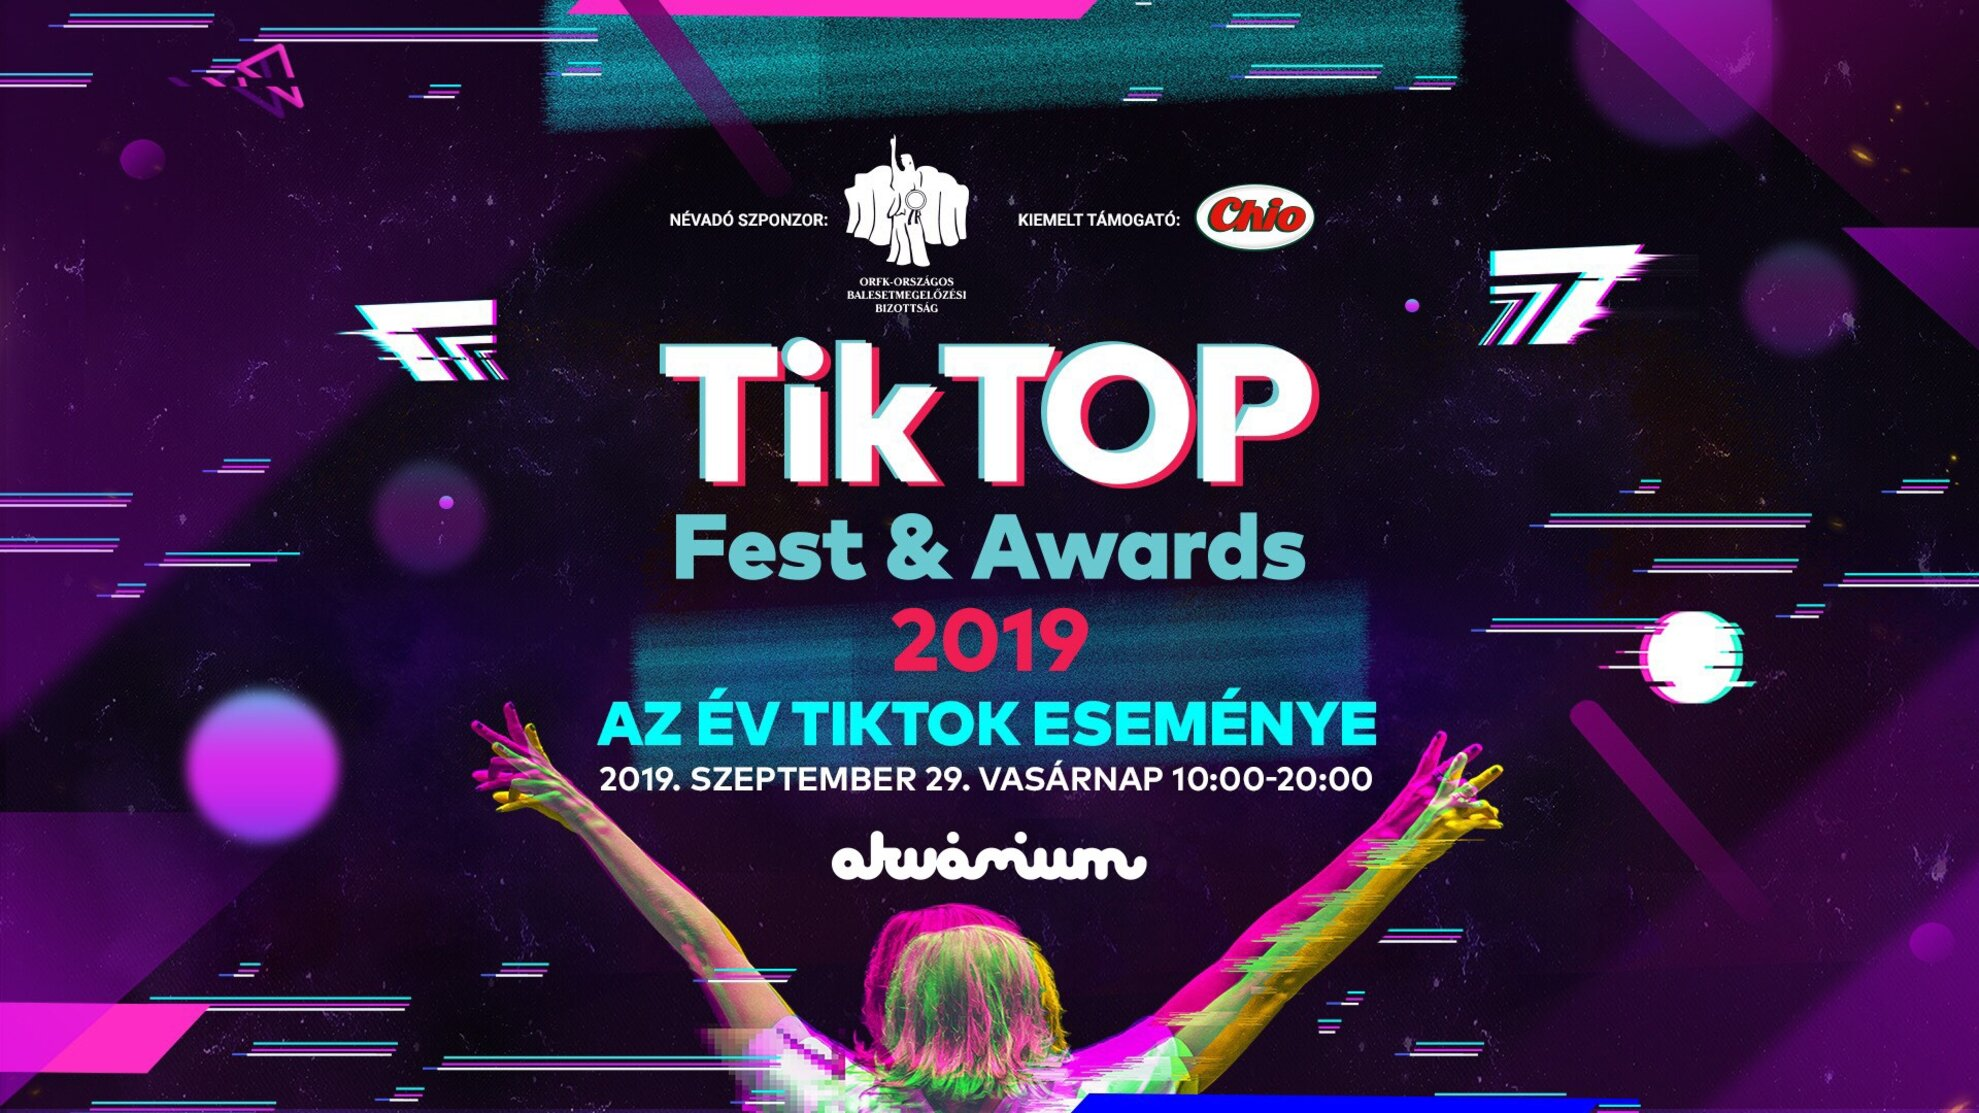 TikTOP Fest & Awards 2019